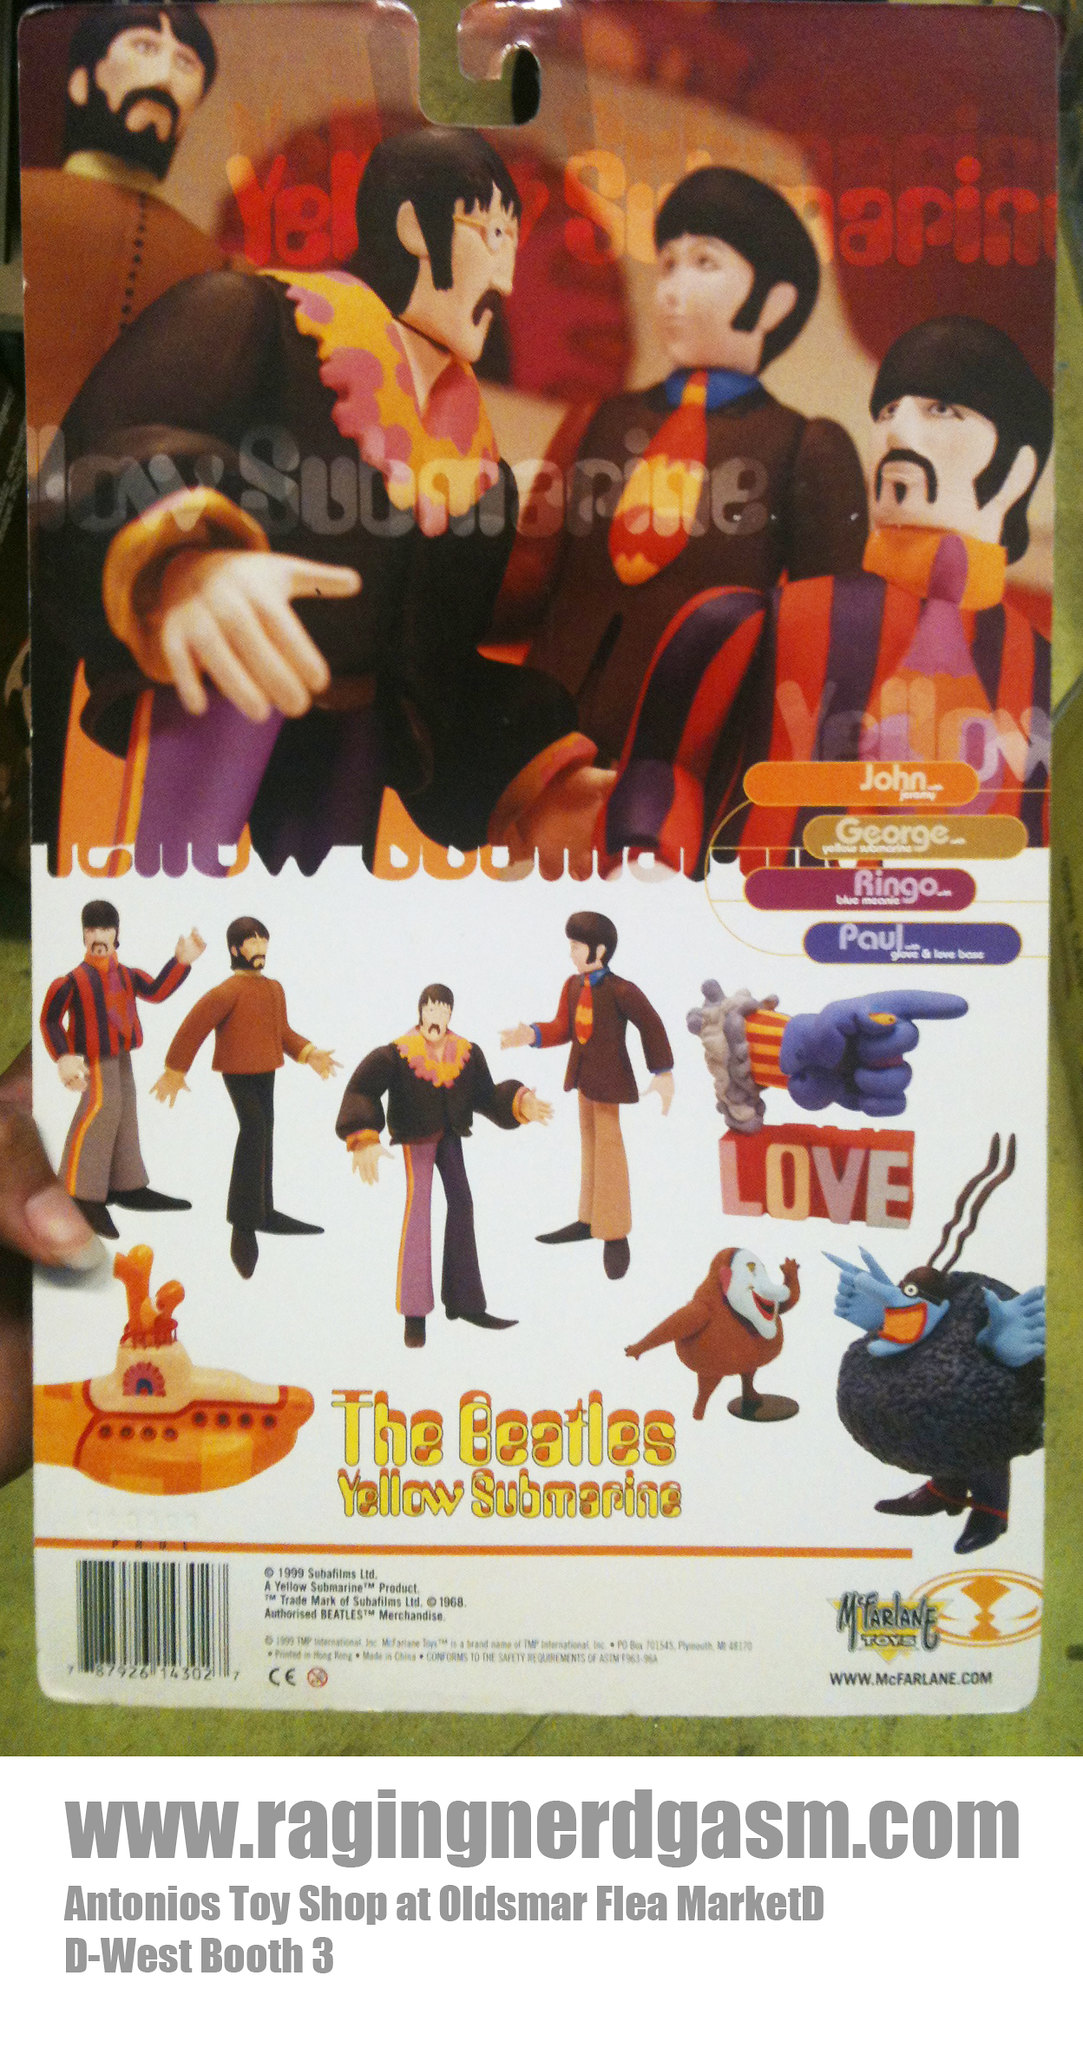 Mc Farlane ToysThe Beatles Yellow Submarine 009